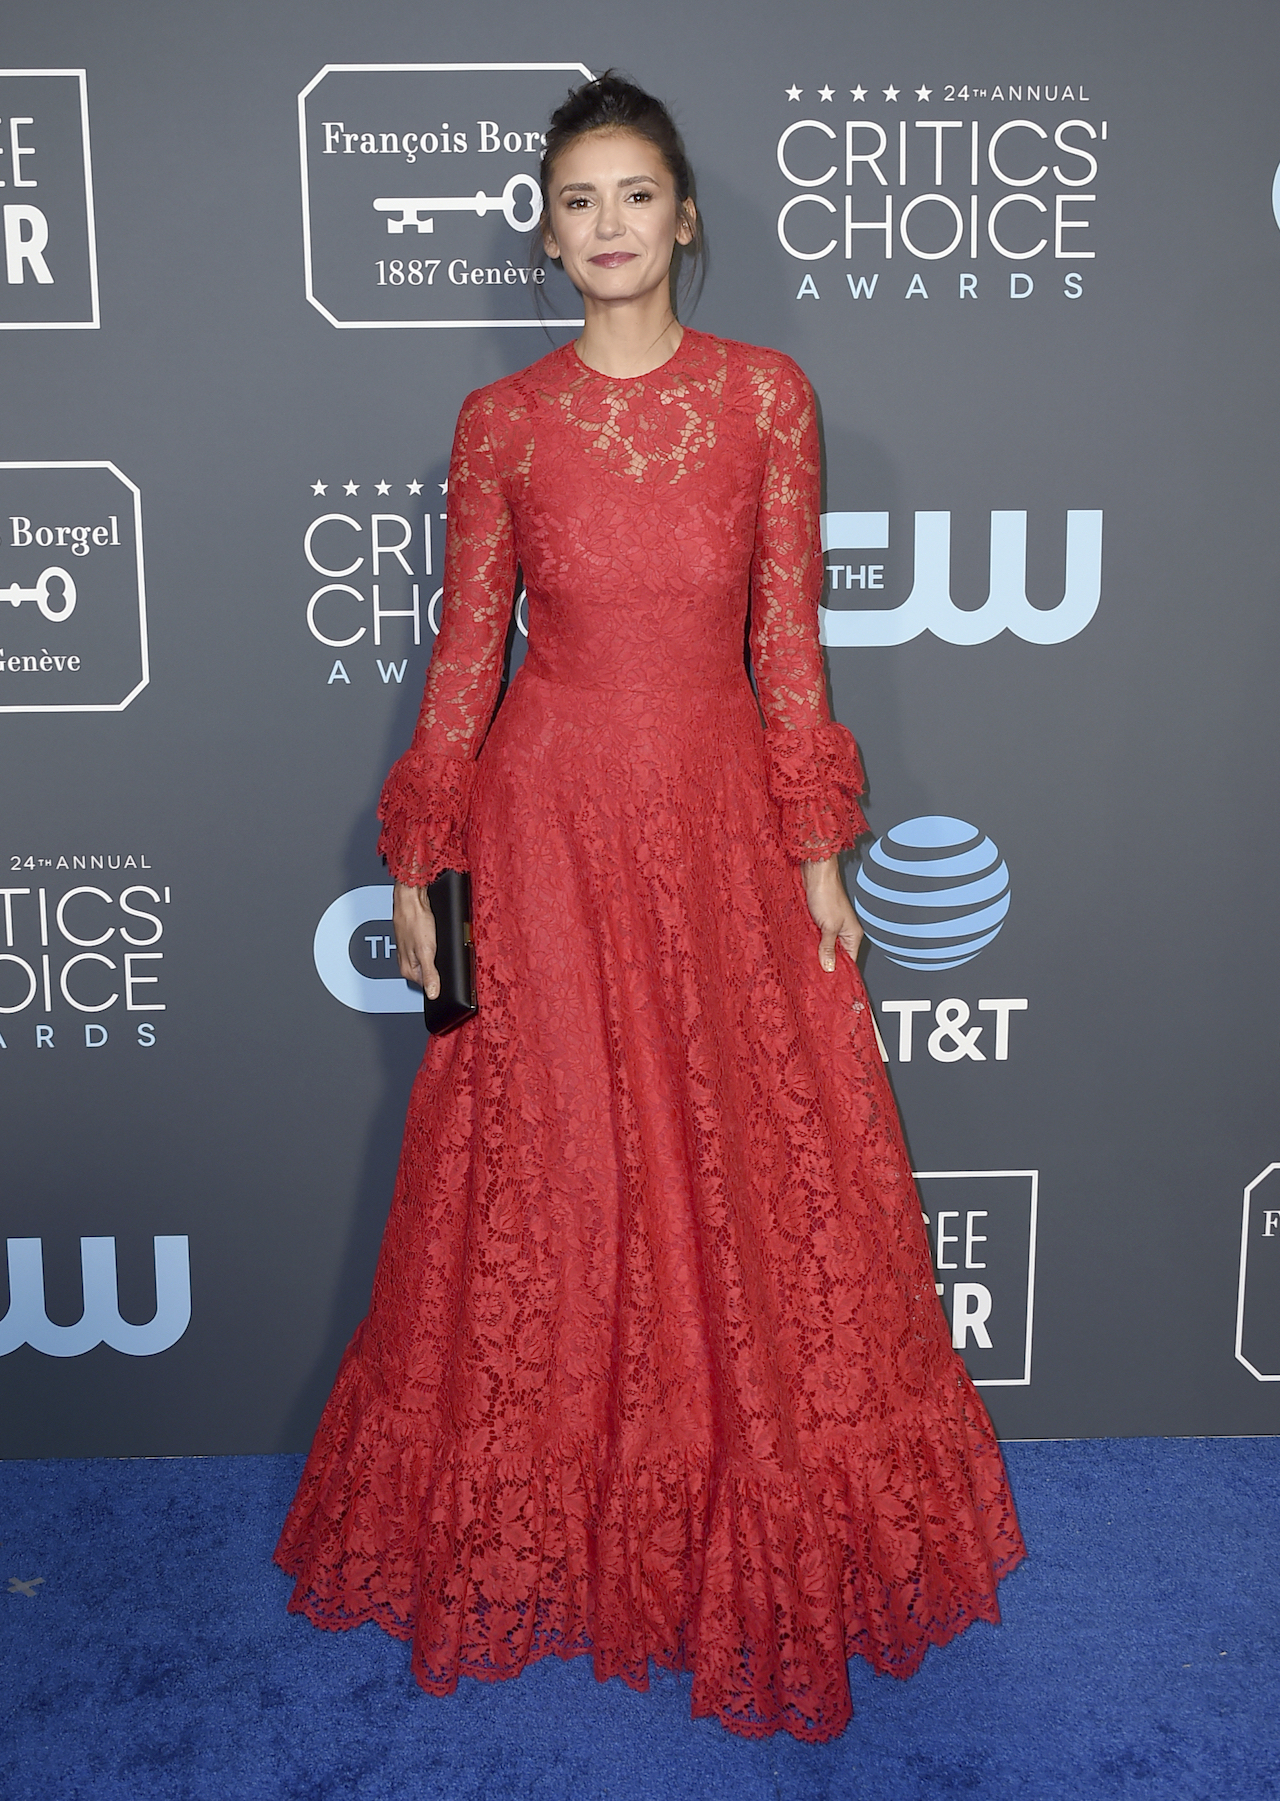 "<div class=""meta image-caption""><div class=""origin-logo origin-image ap""><span>AP</span></div><span class=""caption-text"">Nina Dobrev arrives at the 24th annual Critics' Choice Awards on Sunday, Jan. 13, 2019, at the Barker Hangar in Santa Monica, Calif. (Jordan Strauss/Invision/AP)</span></div>"